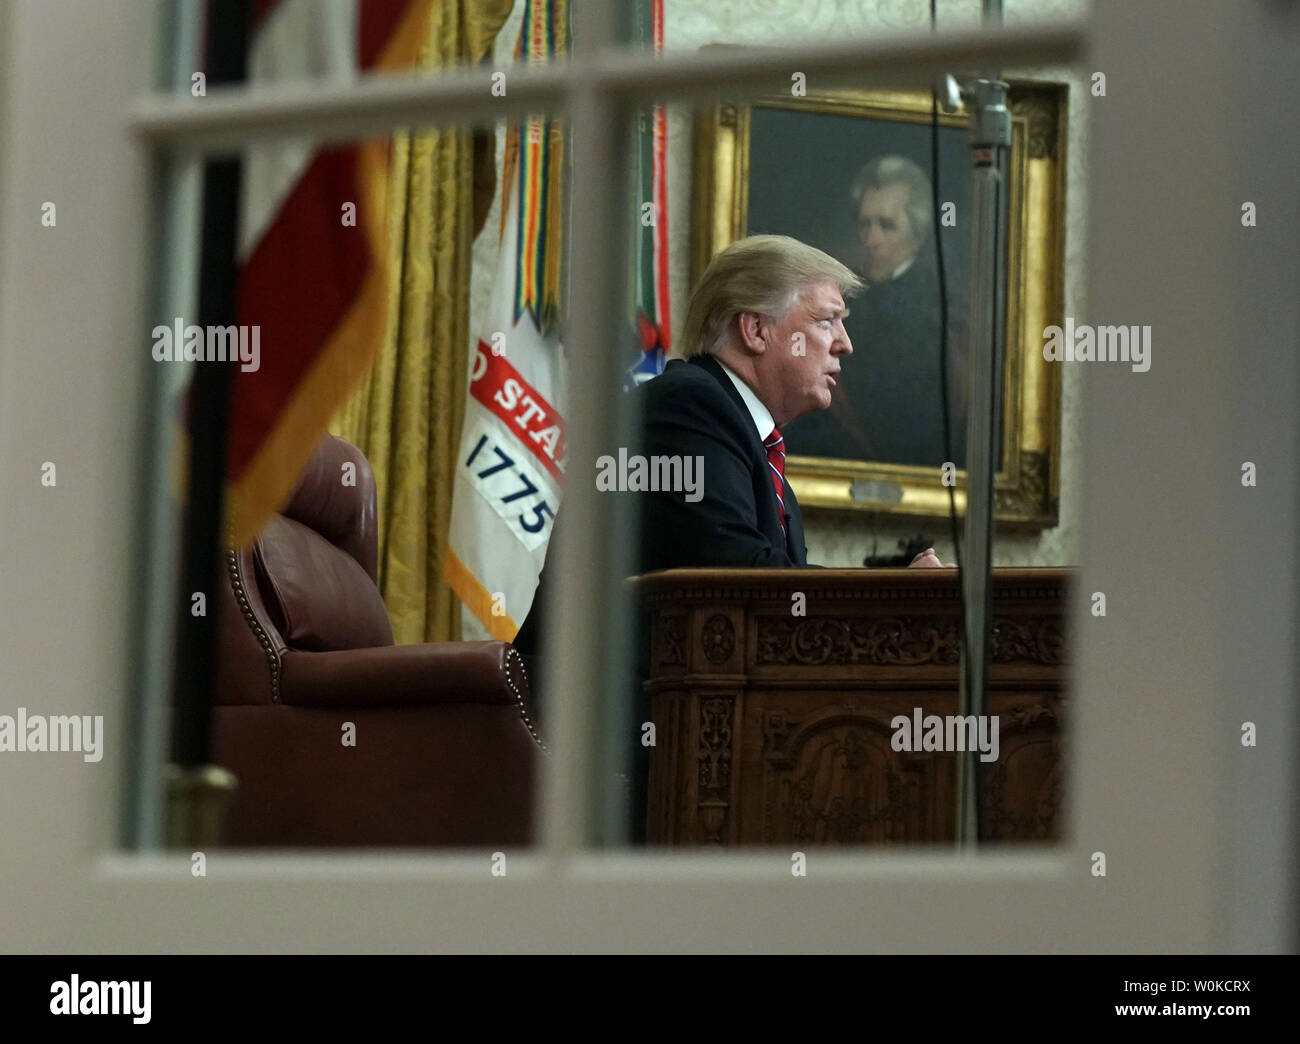 President Donald Trump deliver a televised address to the nation from the Oval Office at the White House in Washington, DC on January 8, 2019.  Photo taken through the Oval Office windows.   The speech comes on the 18th day of a partial government shutdown cause by a dispute over a proposed border wall separating the United States and Mexico.     Photo by Kevin Dietsch/UPI - Stock Image